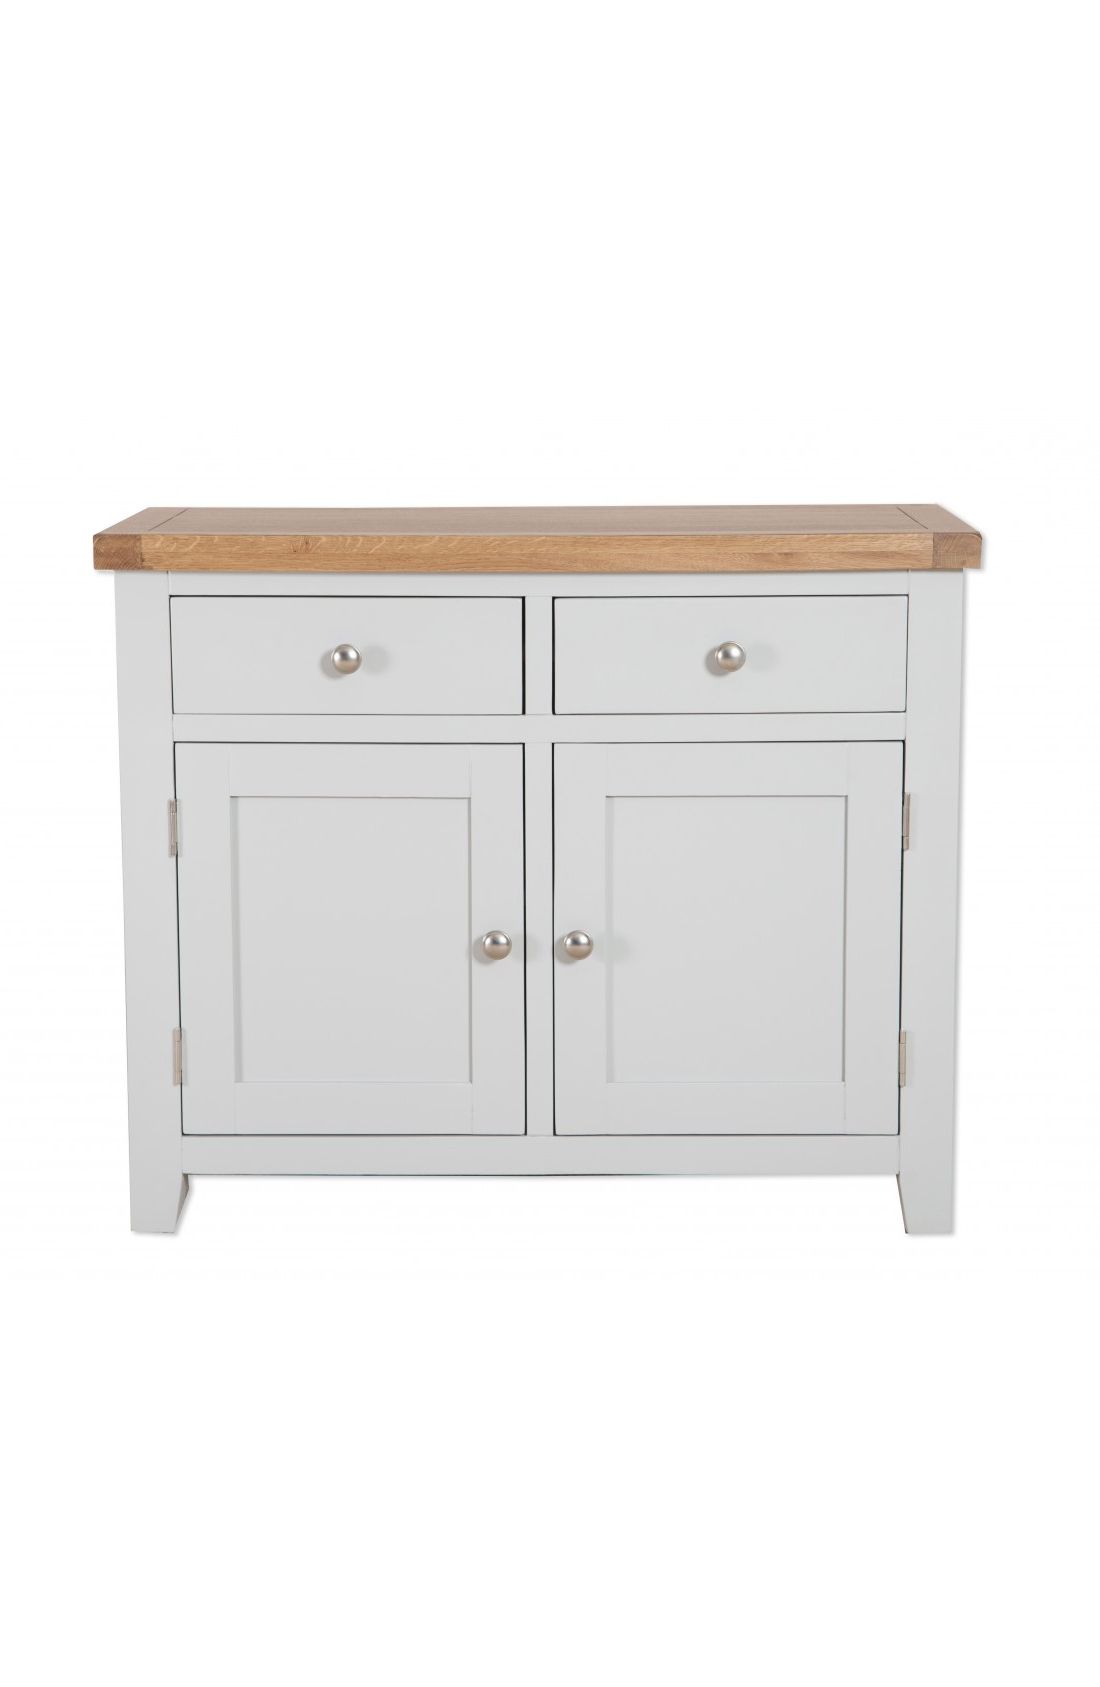 Oakwood Living Grey Painted Oak 2 Door Sideboard 99 X 46 X 81 Cm Inside Most Up To Date Natural Oak Wood 2 Door Sideboards (View 19 of 20)